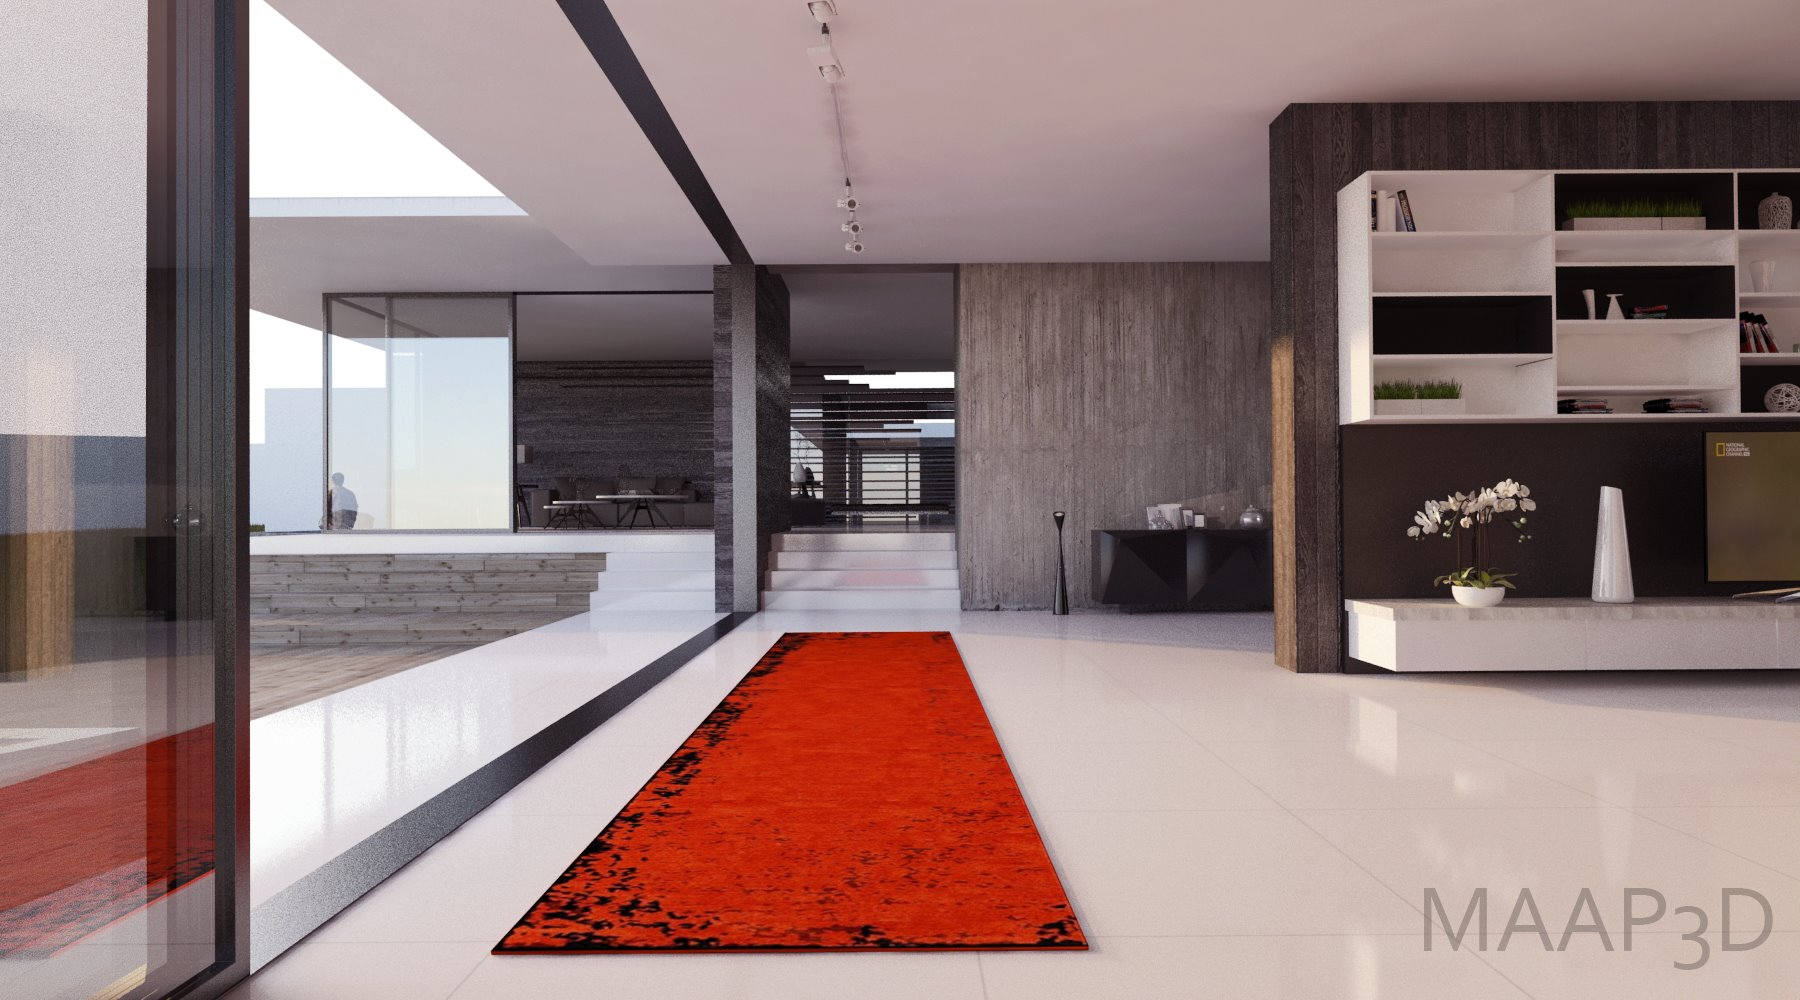 Custom Red Runner rendering by Adrade Architecture